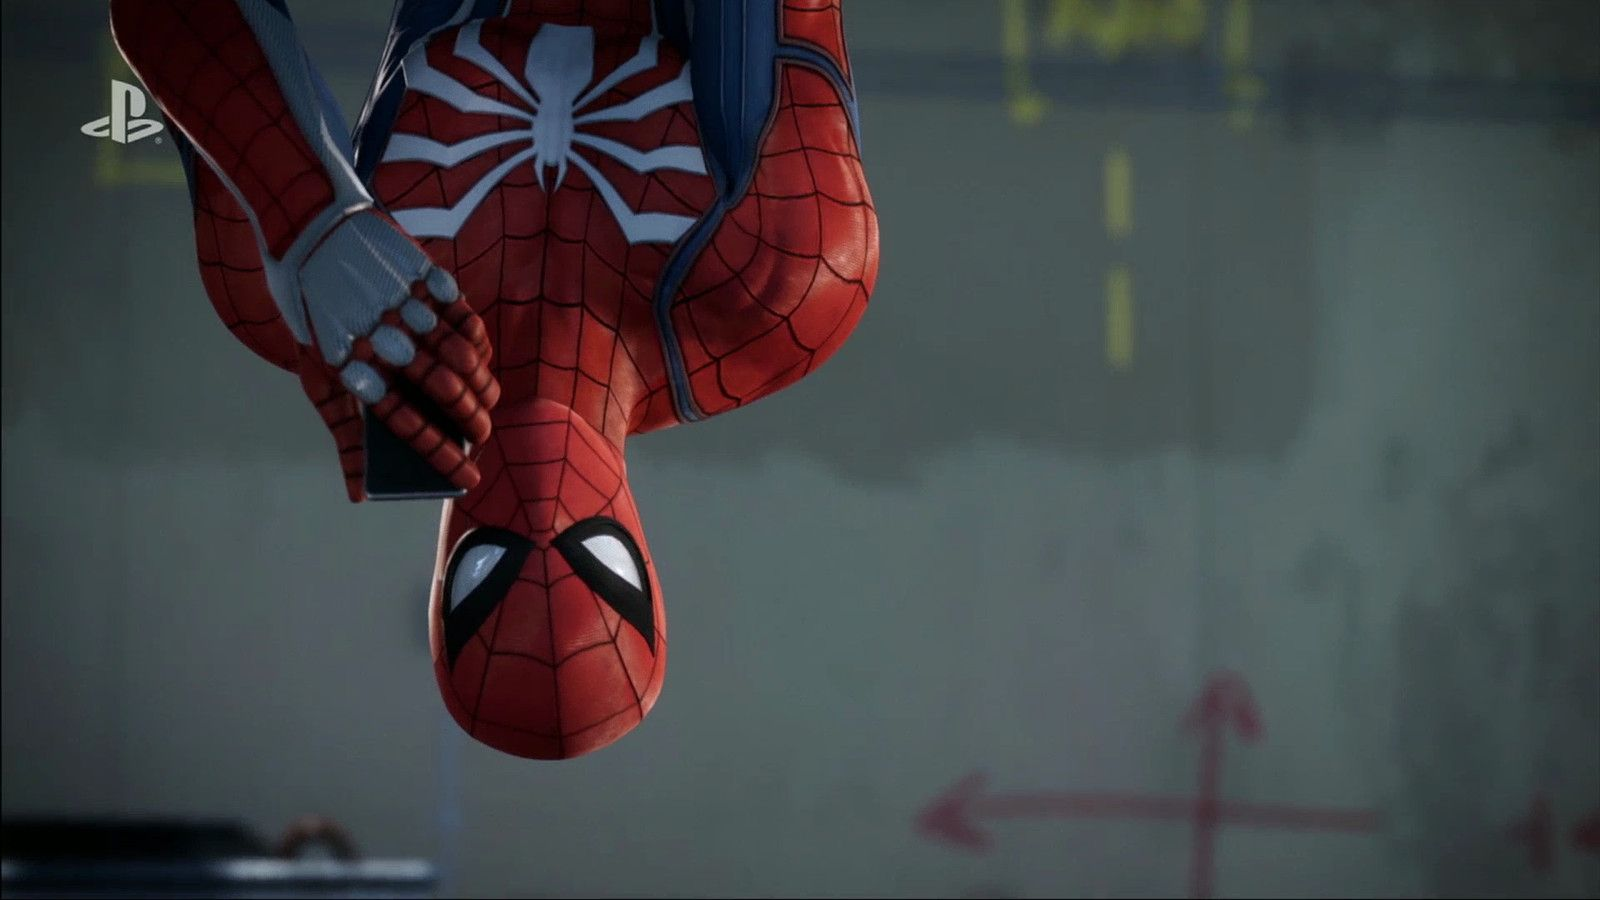 SpiderMan (PS4) HD Wallpapers Spiderman ps4 wallpaper